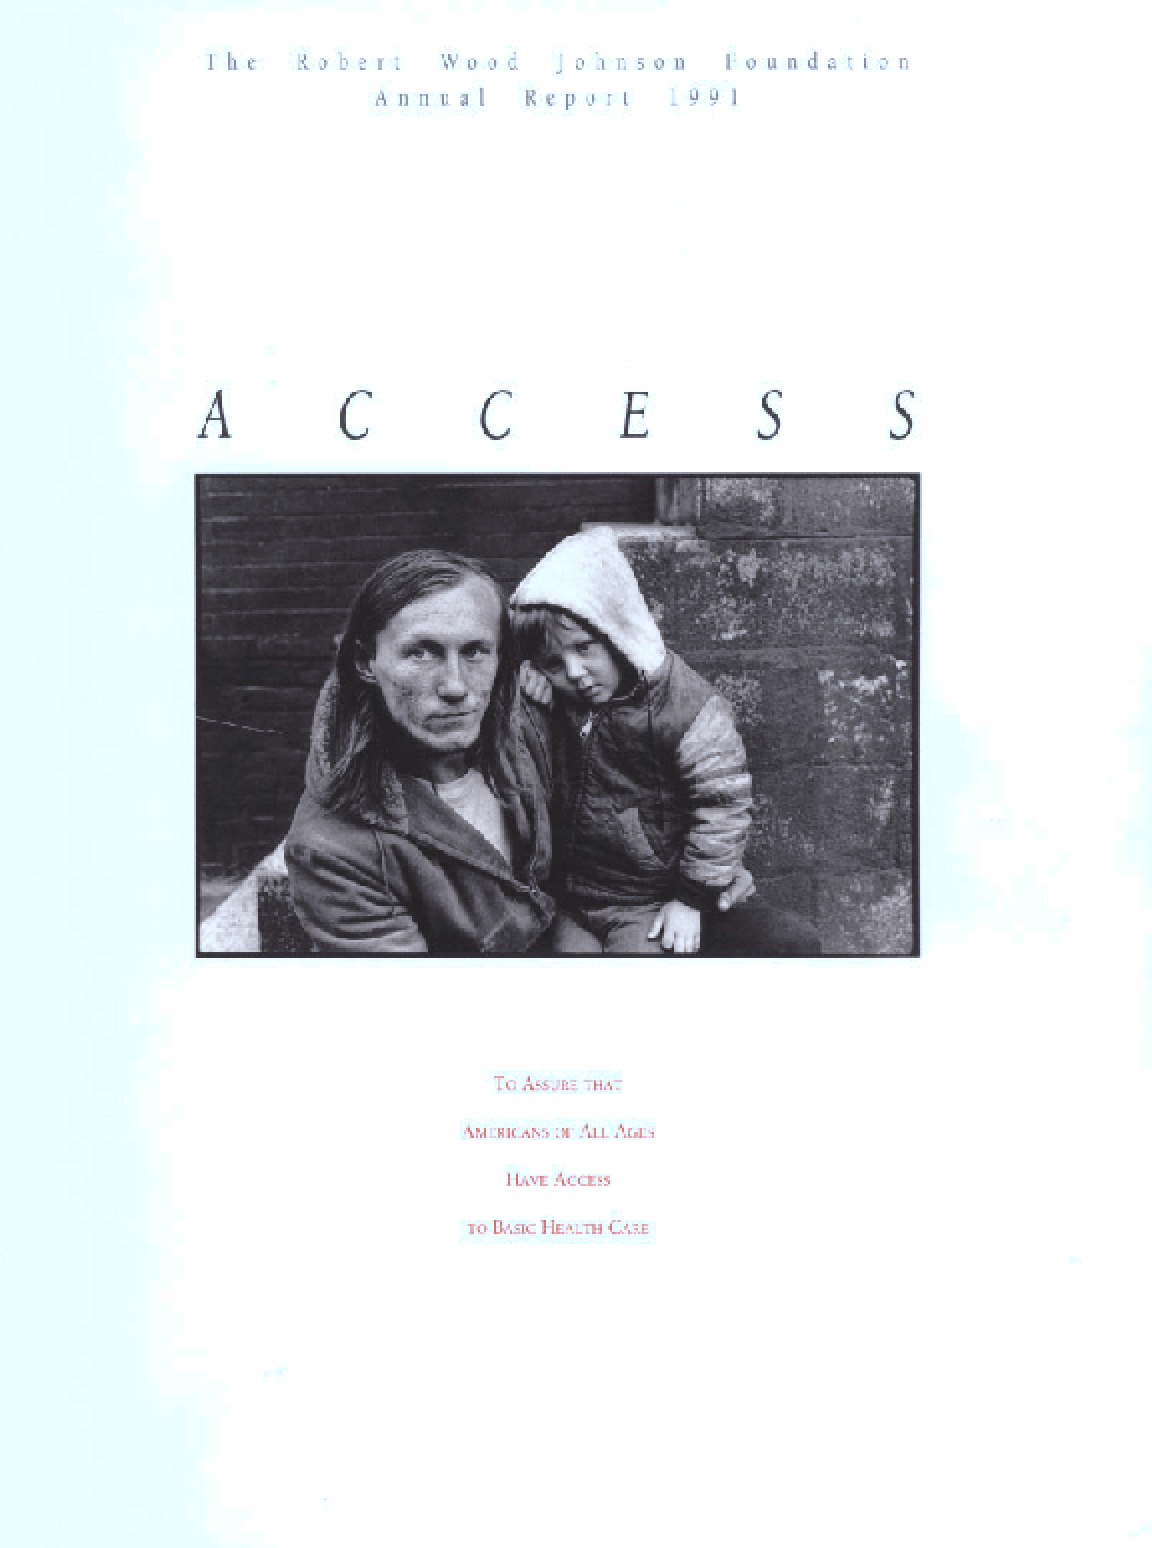 Robert Wood Johnson Foundation - 1991 Annual Report: Access